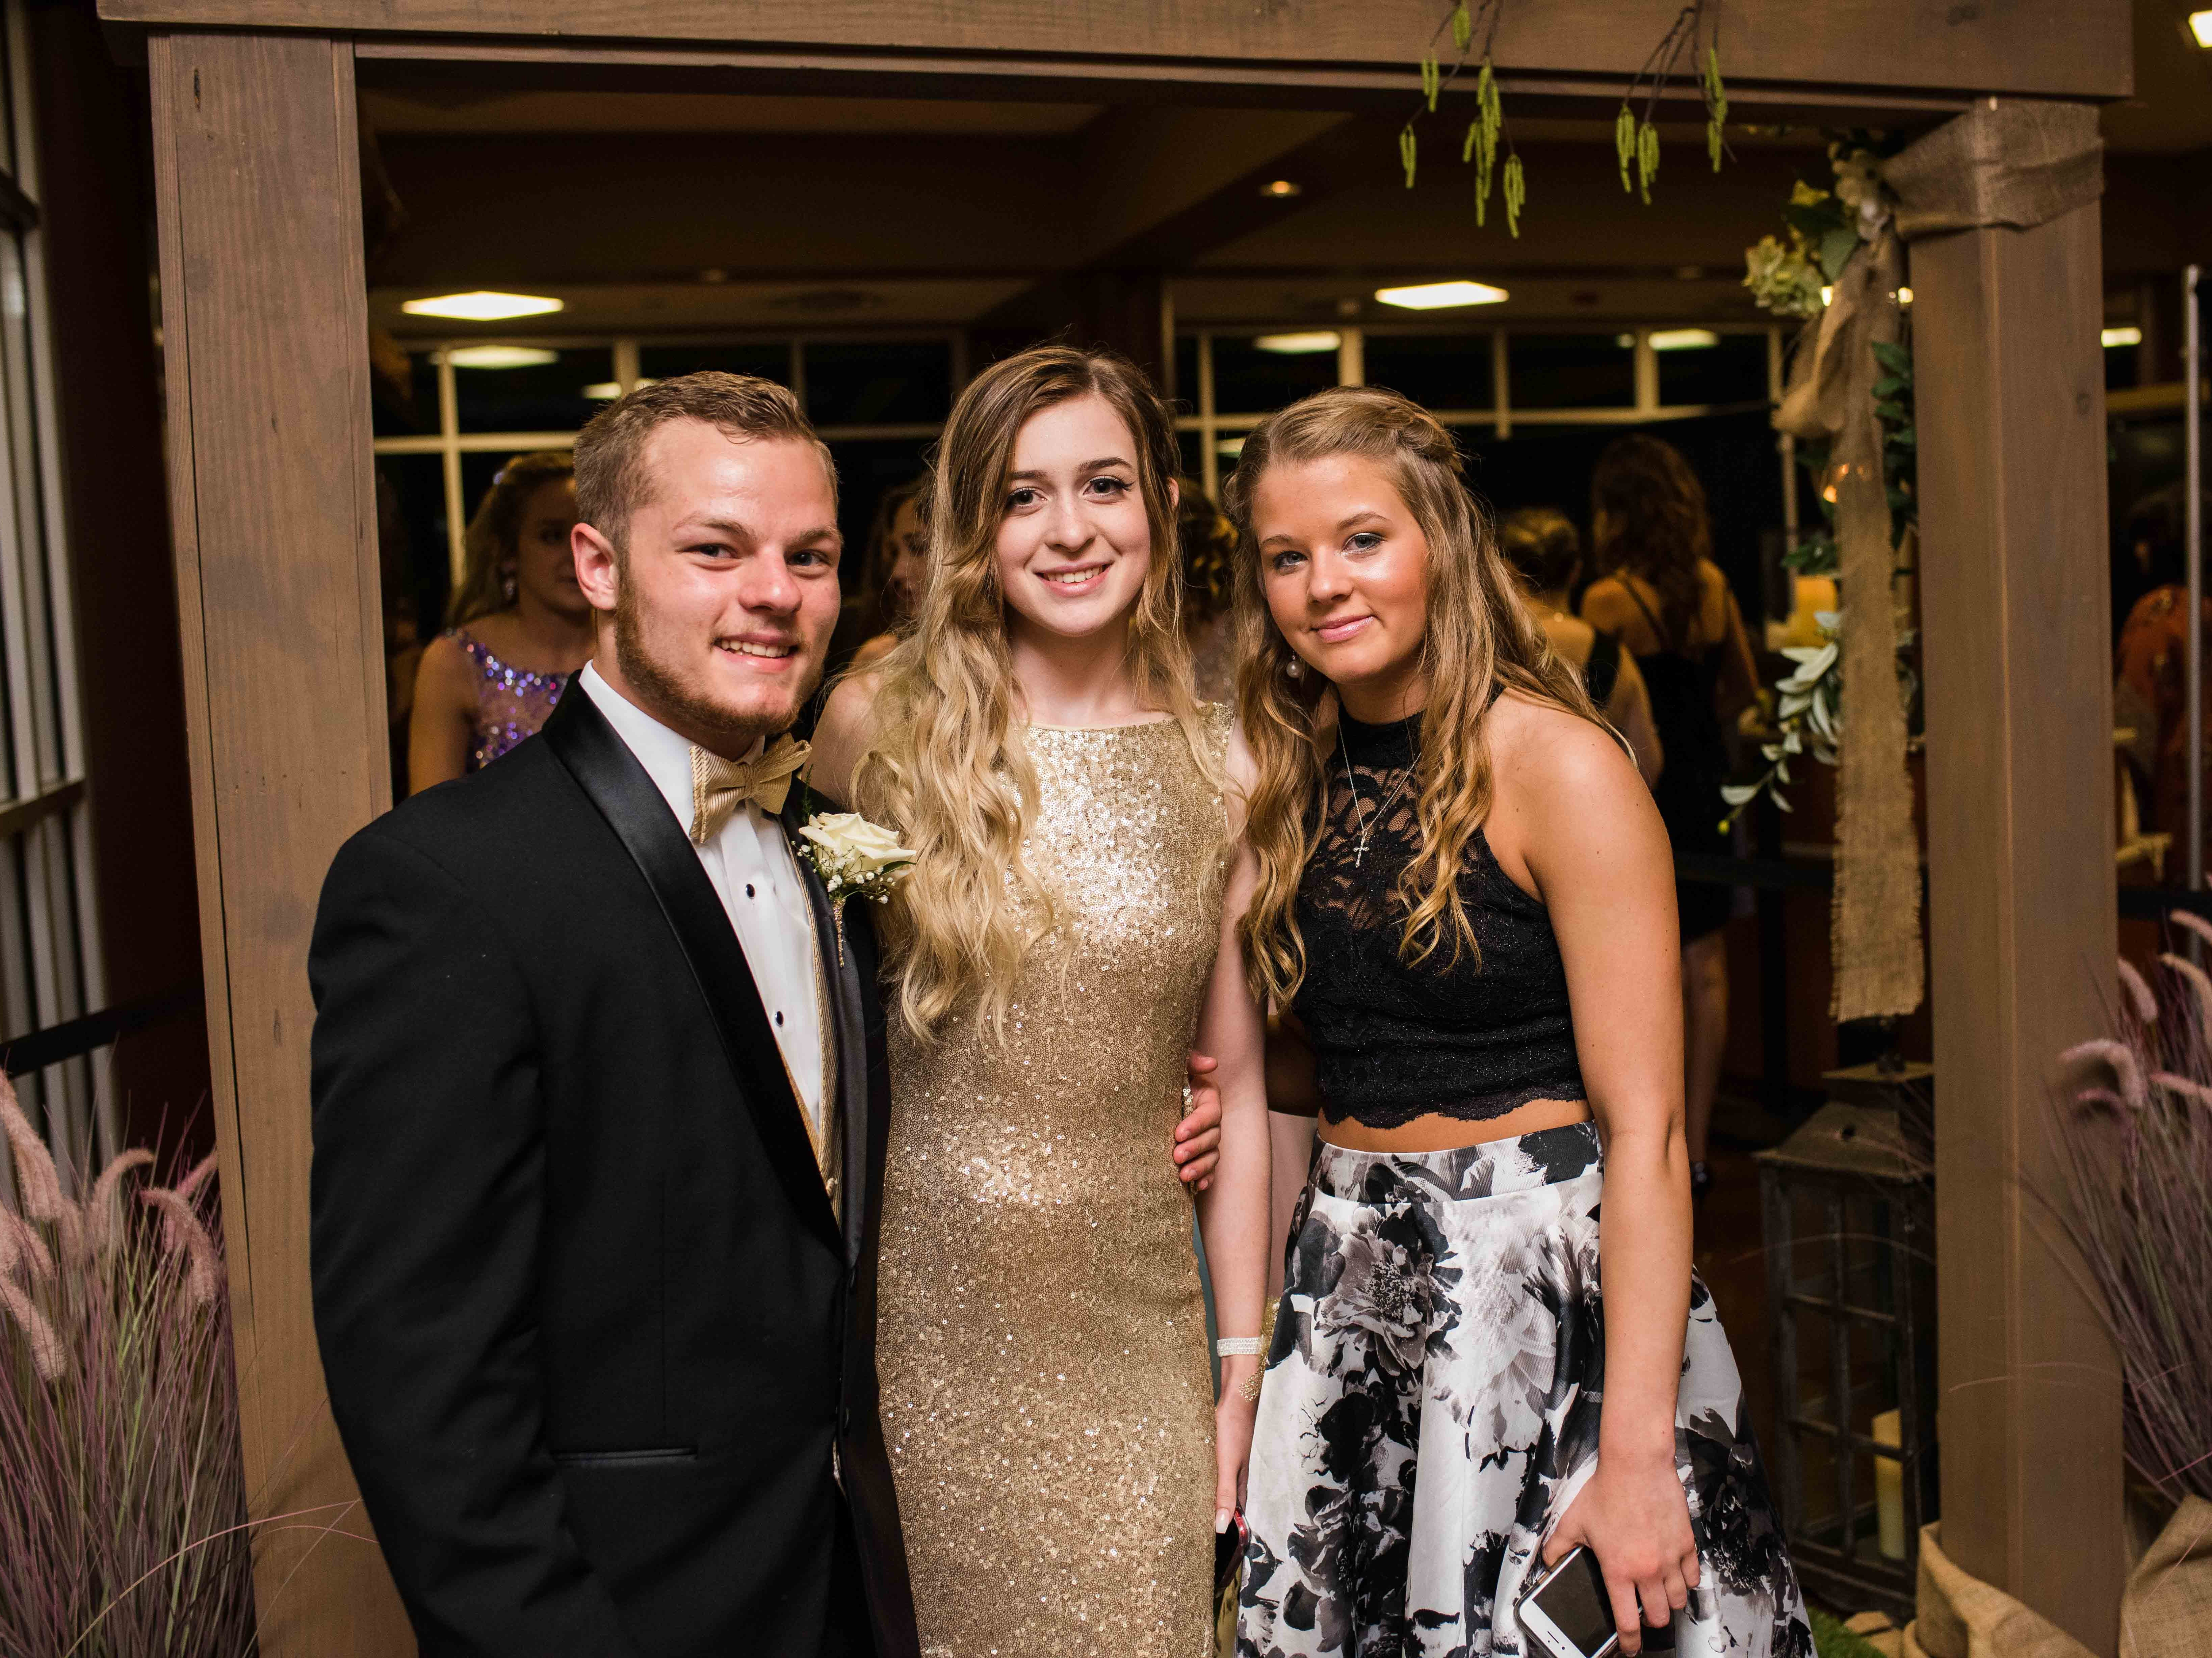 Gage Barefield, Lauren Collins and Savannah Barefield at Rossview High School 2019 prom Saturday night at Valor Hall in Oak Grove, Ky.